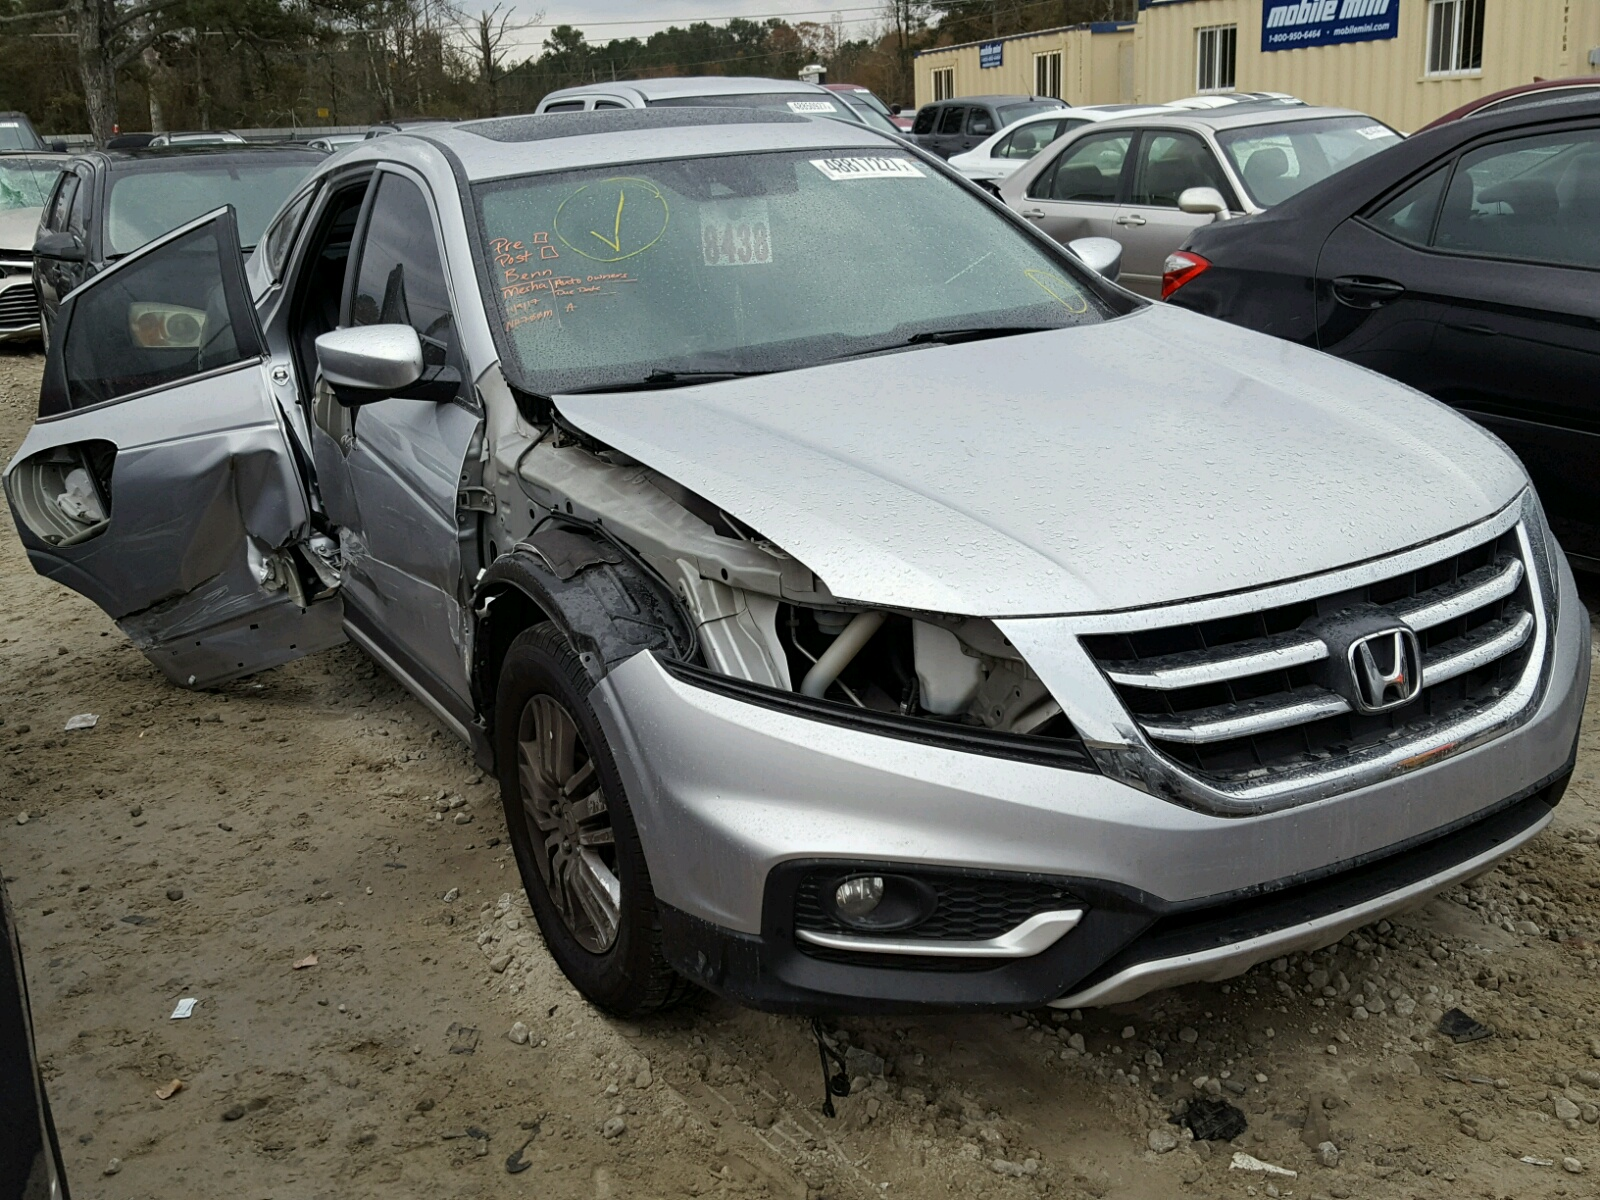 vehicleid ex for crosstour pearl honda in sale cleveland black desc l vehicle details crystal used oh